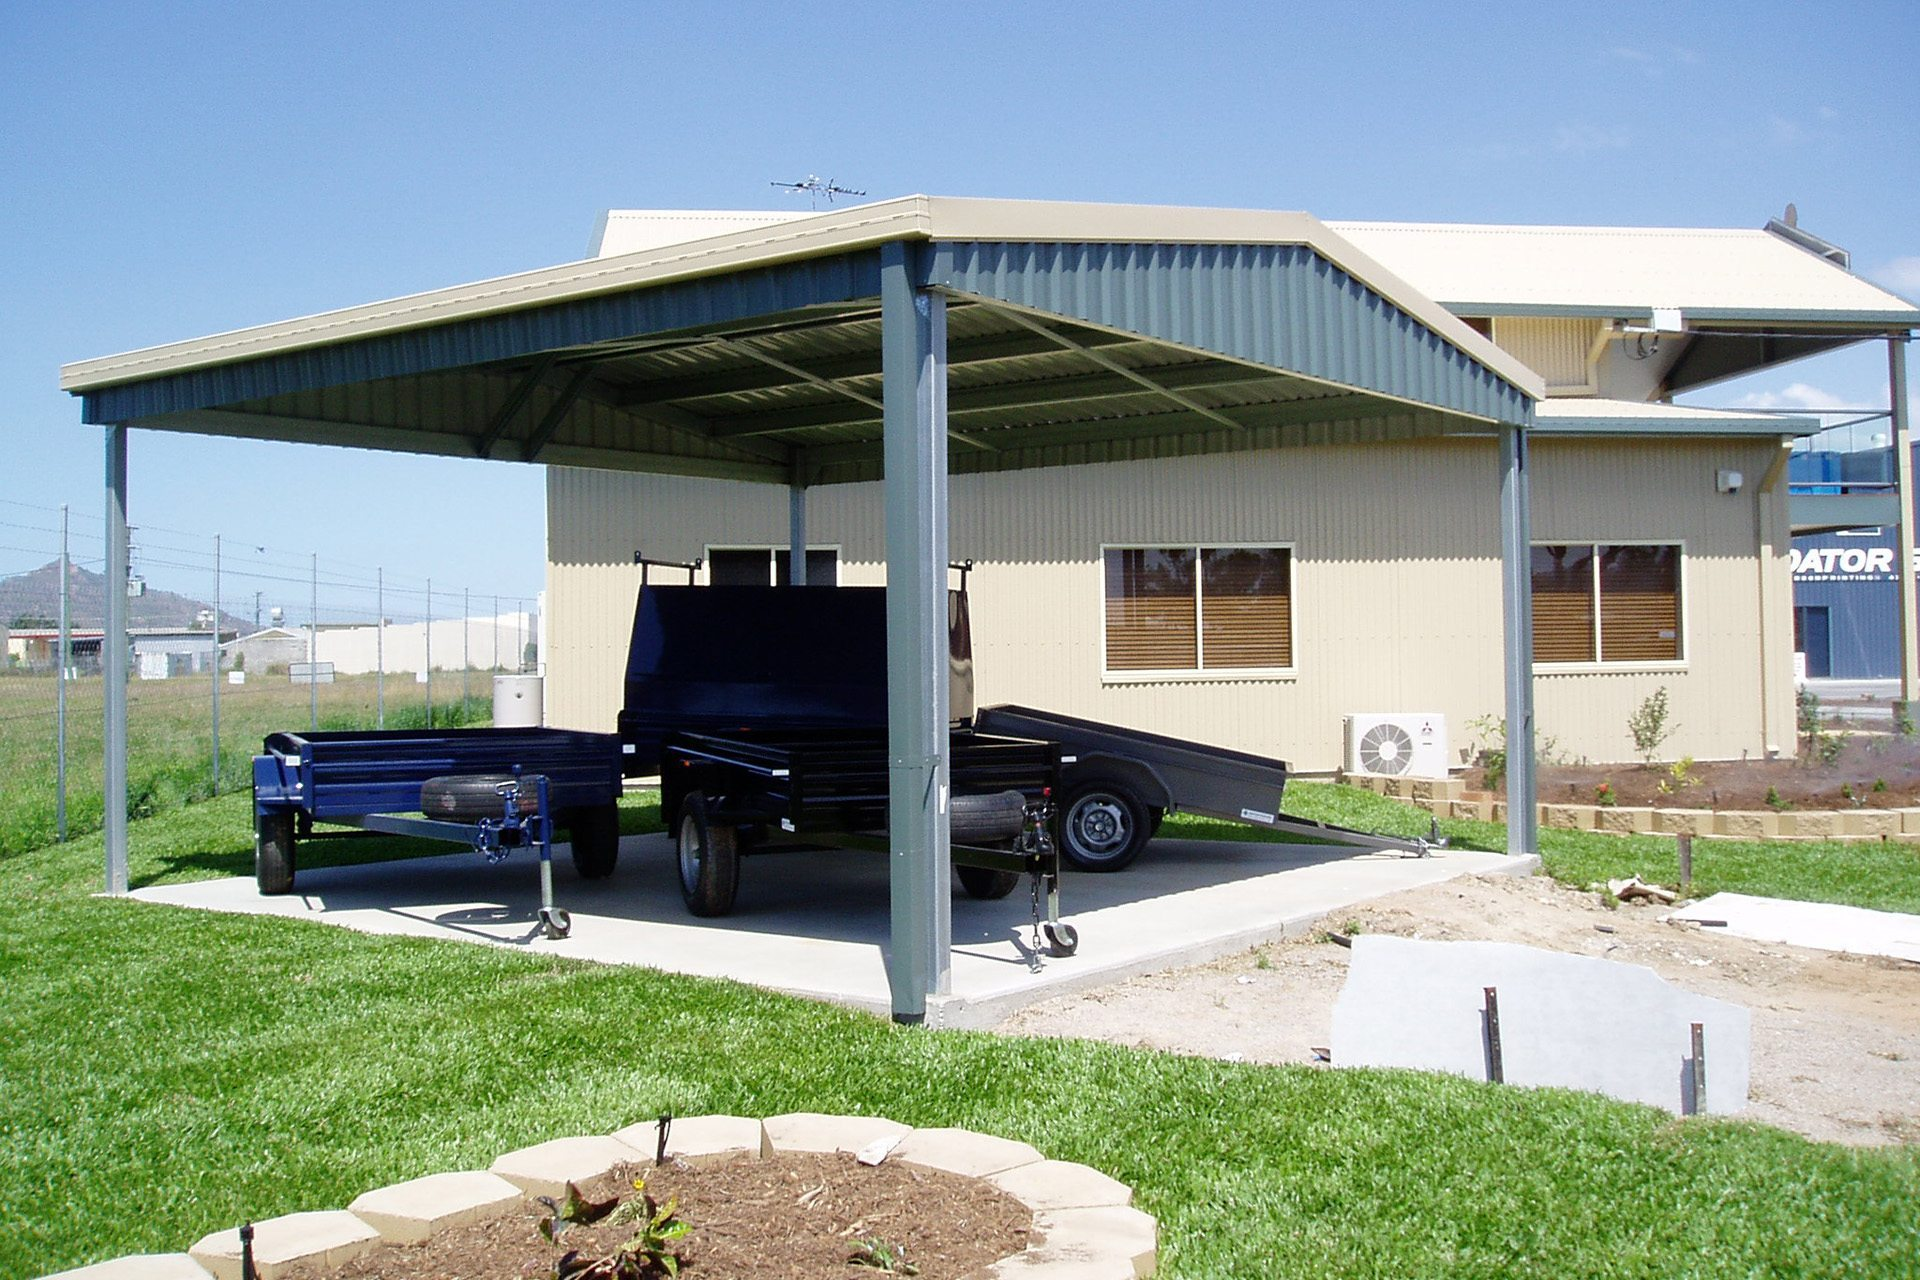 Carport Garage Kits : Carports sheds and garages for sale ranbuild